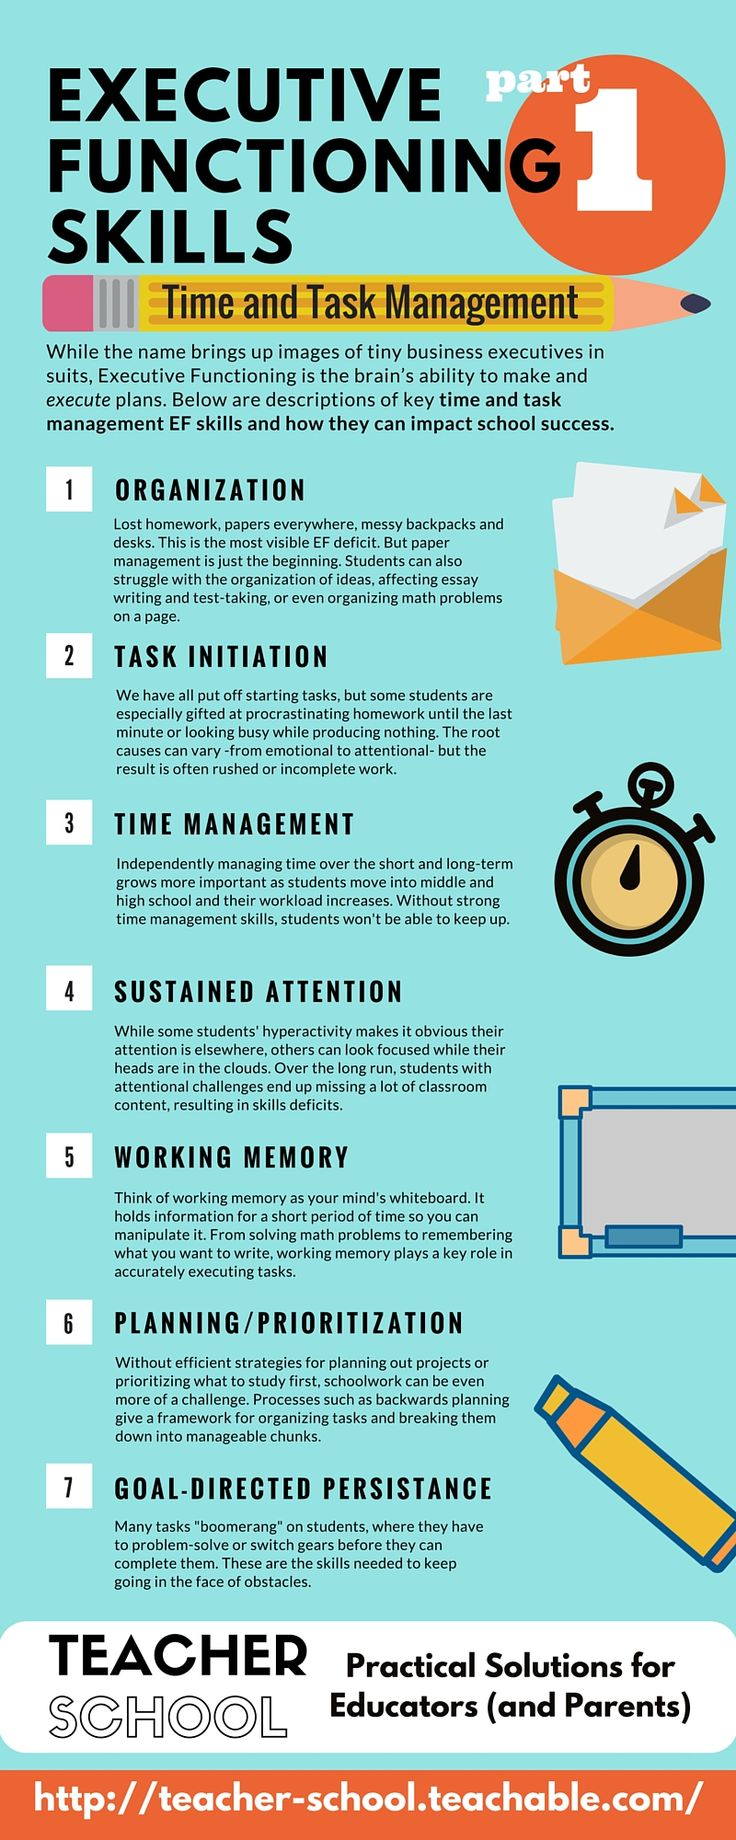 best ideas about time management skills executive functioning skills range from organization to time management take this mini course